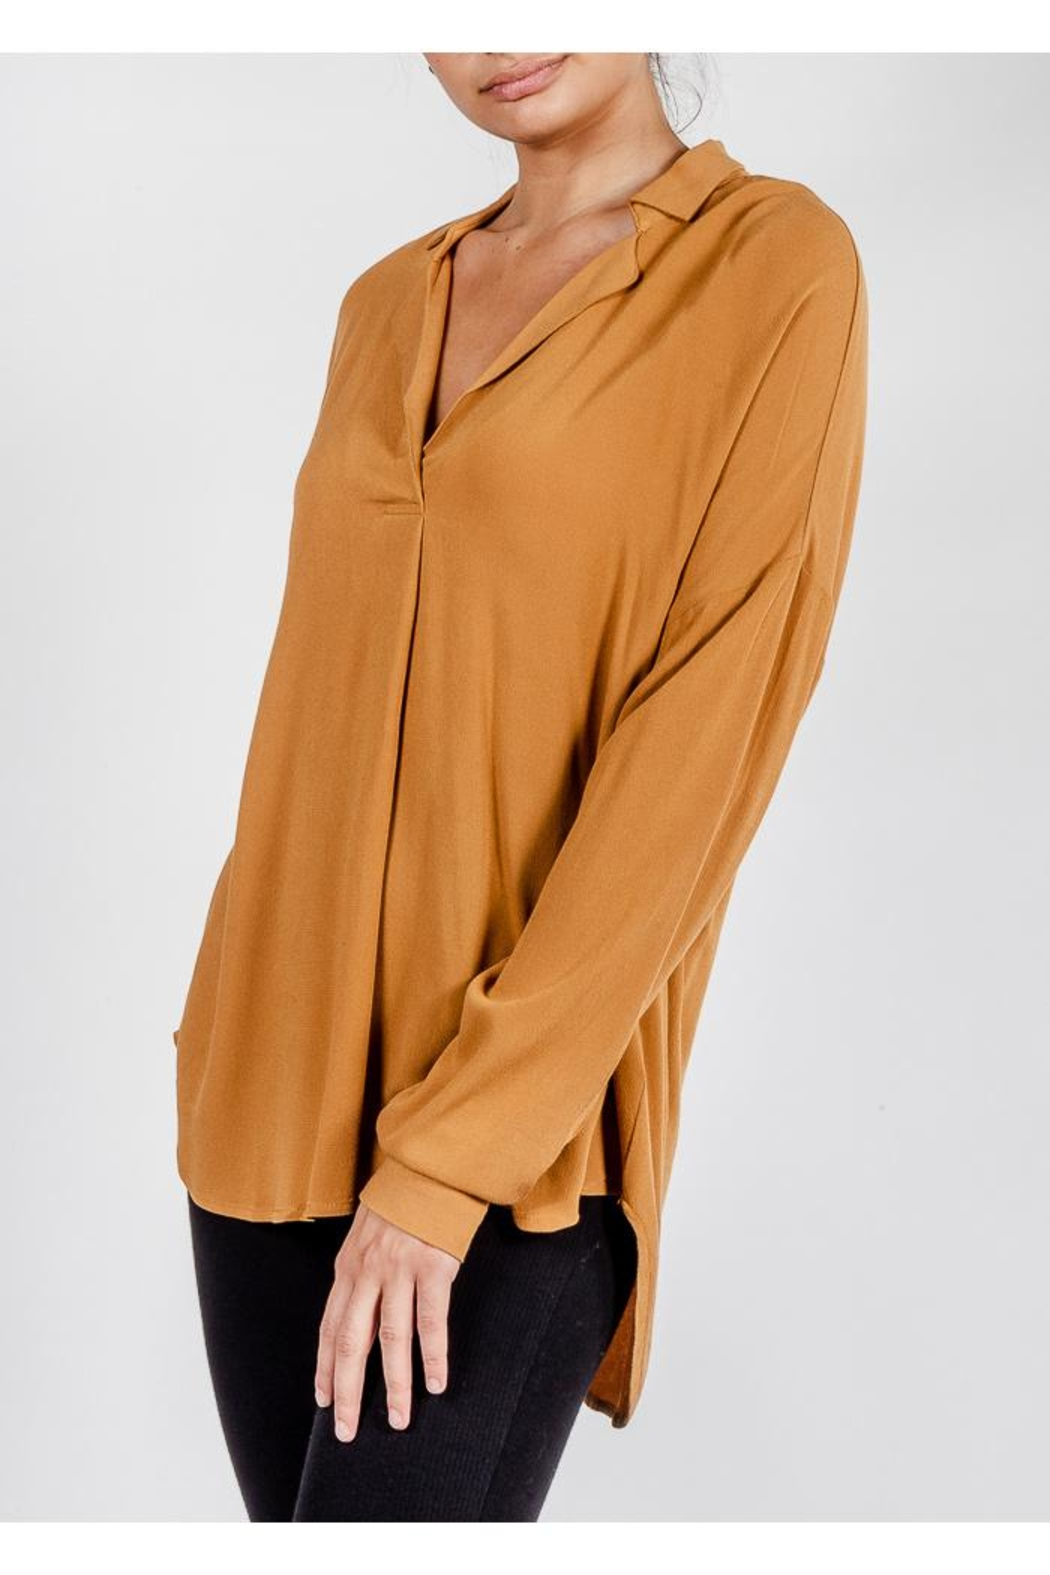 All In Favor Breezy Chic Blouse - Side Cropped Image